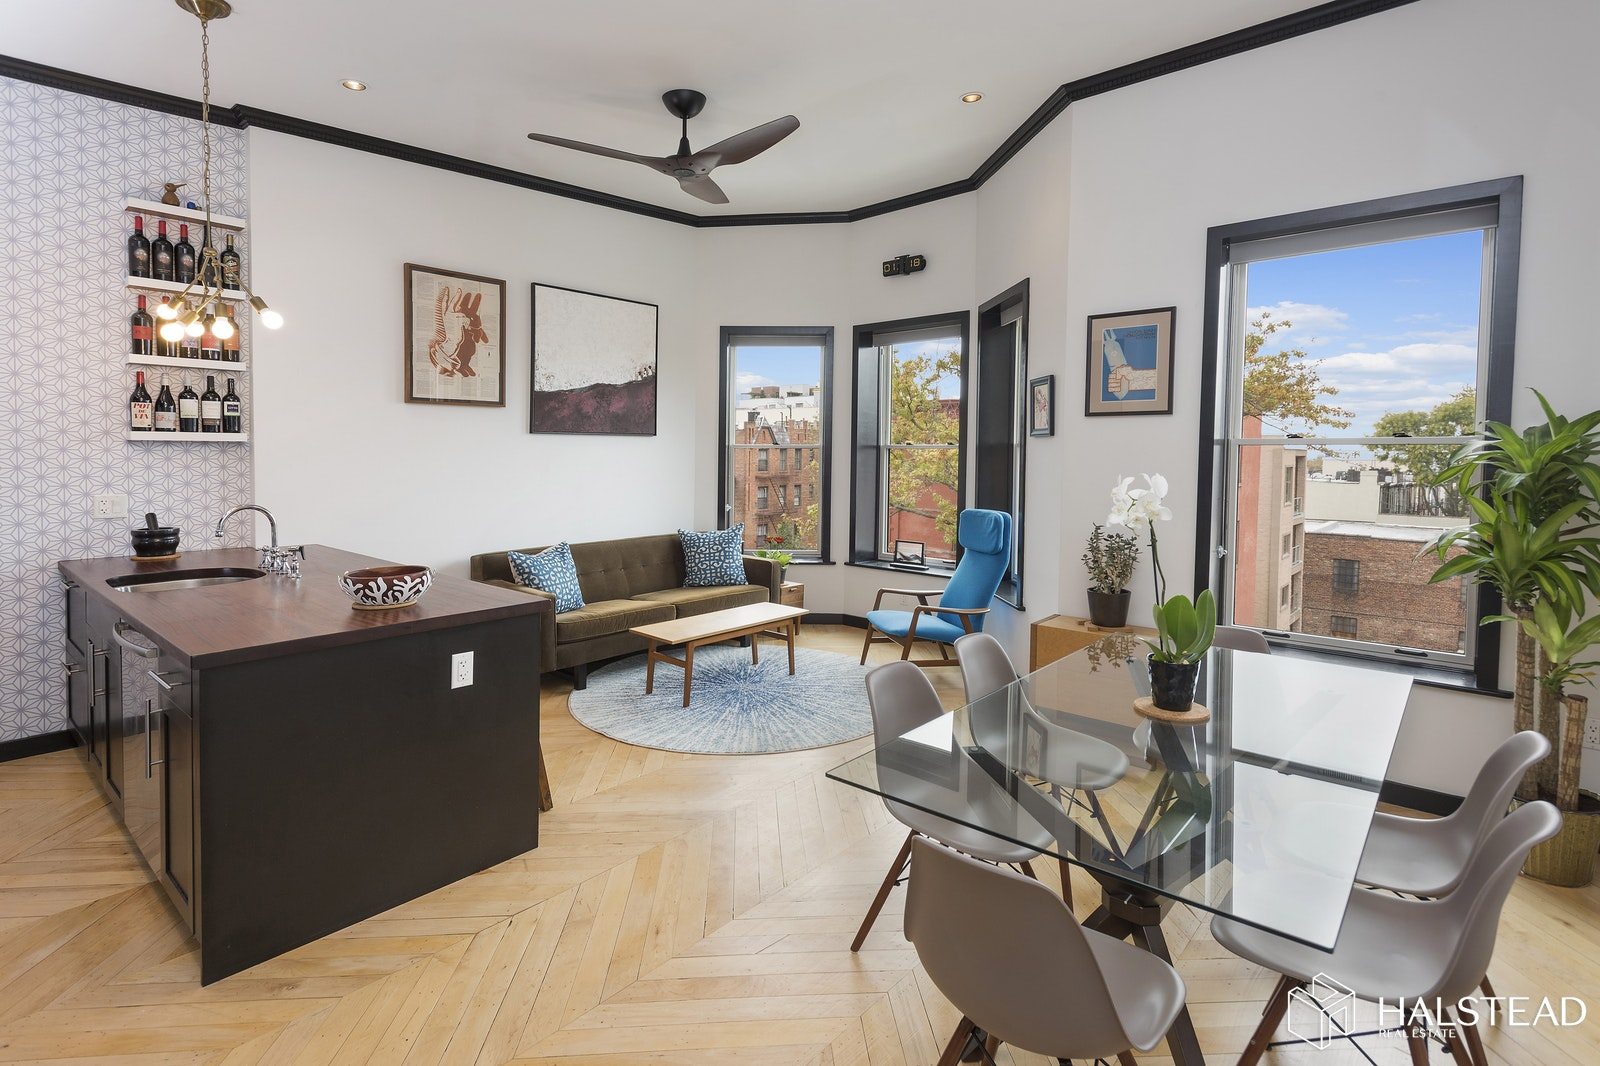 1015 Eighth Avenue 4, Park Slope, Brooklyn, NY, 11215, $1,385,000, Sold Property, Halstead Real Estate, Photo 1